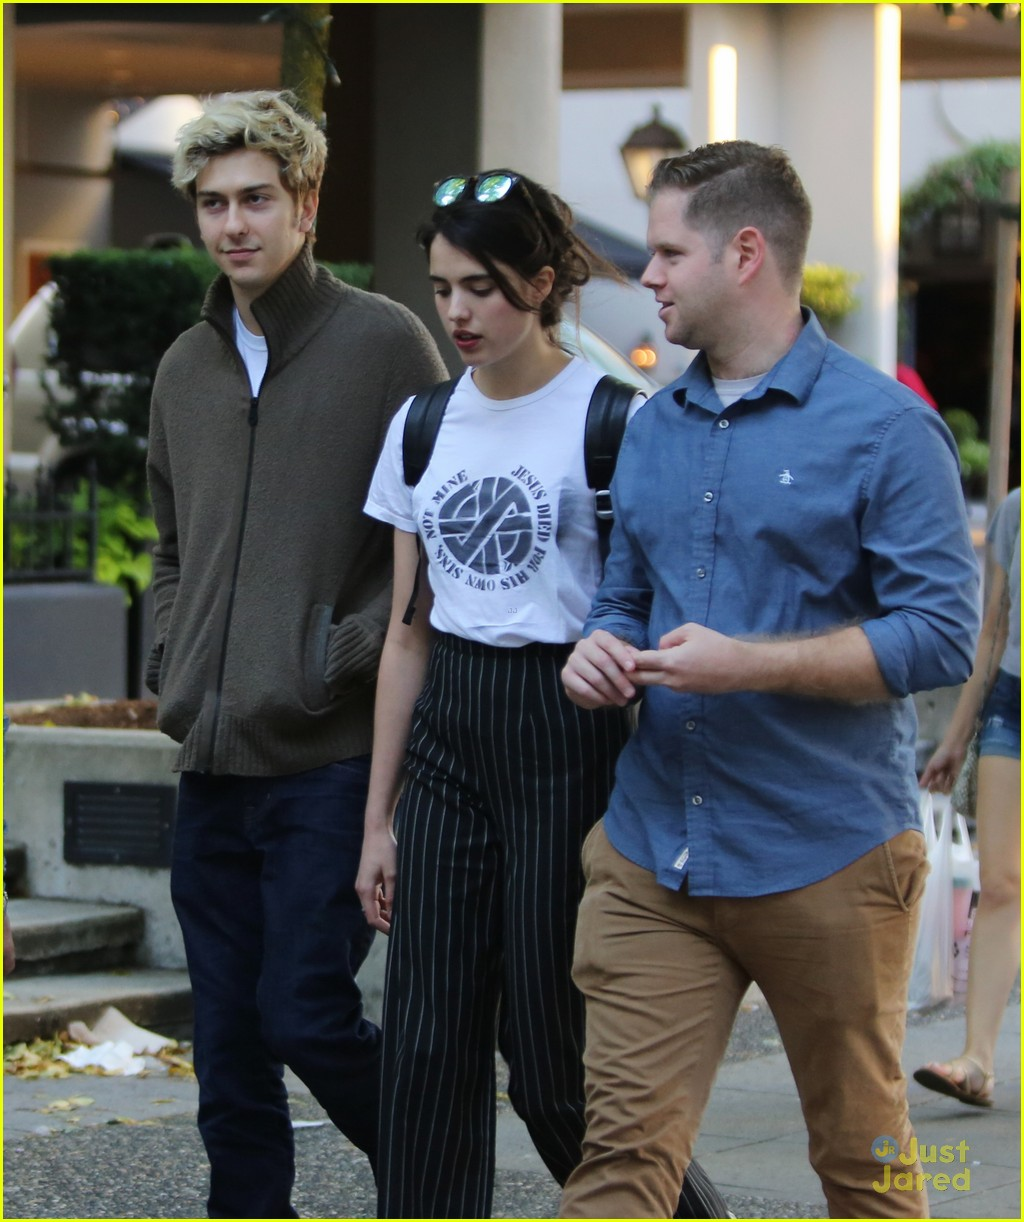 Full Sized Photo Of Nat Wolff Blond Hair Margaret Qualley